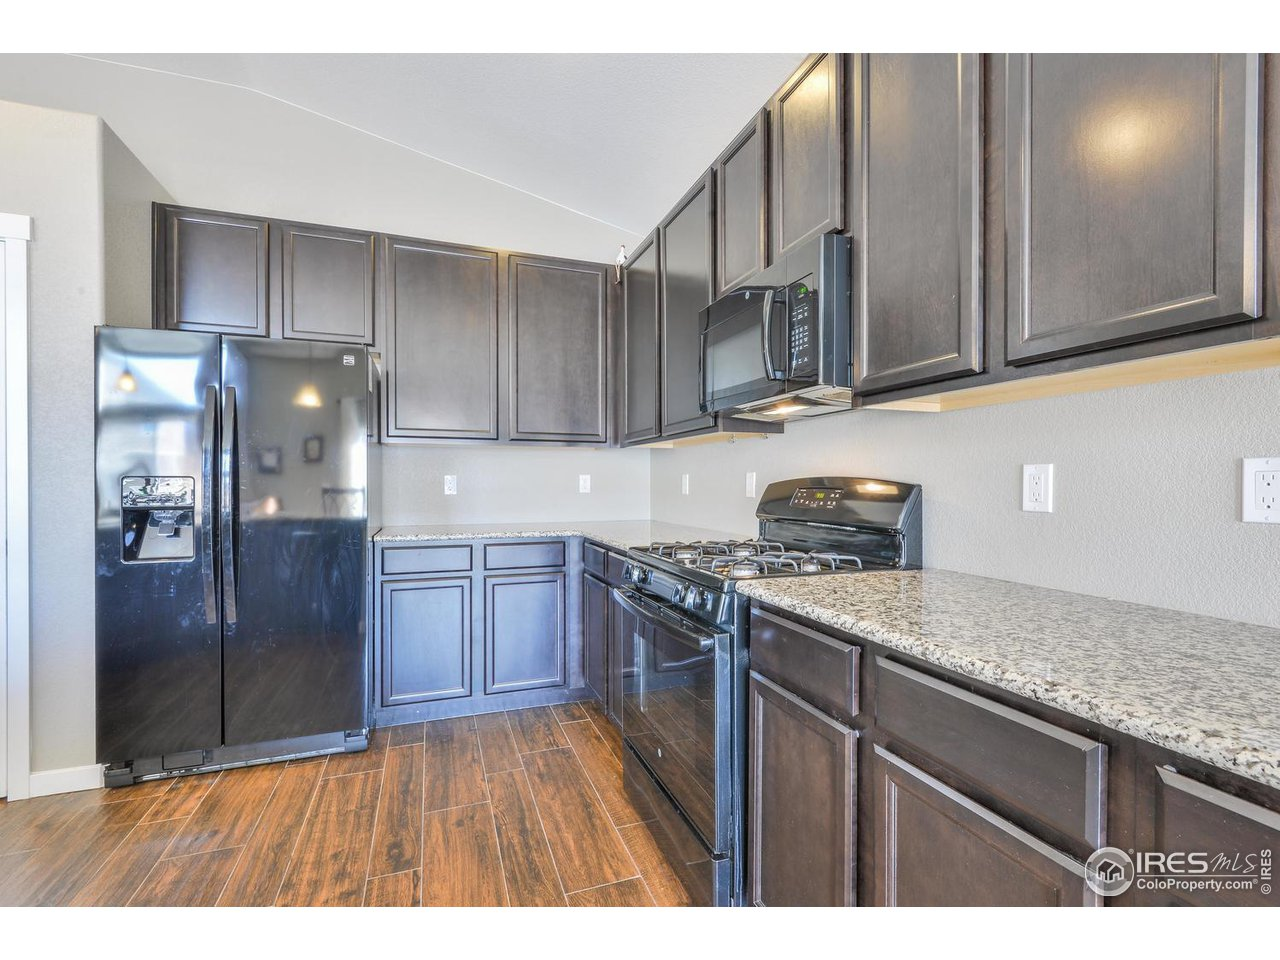 Tons of Countertop Space. Gas Cooking